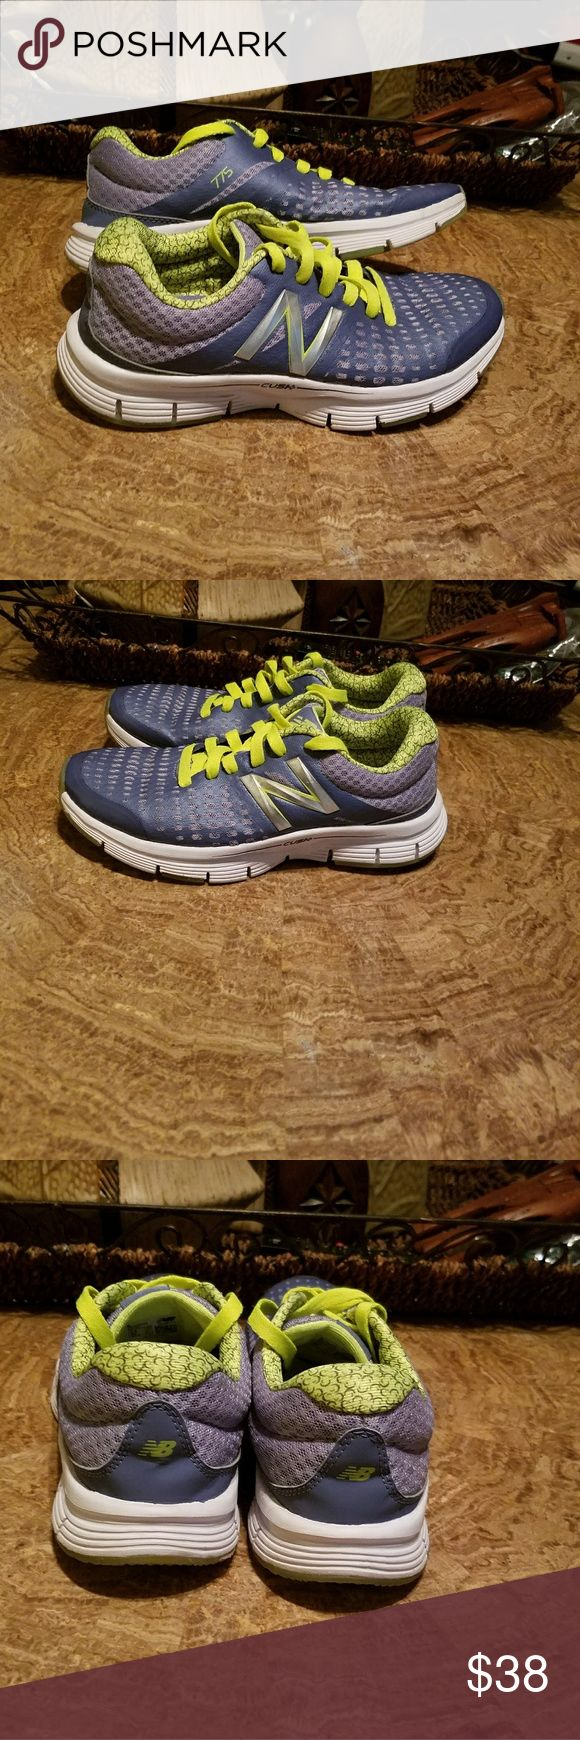 Blue New Balance 775 Blue & Neon green New Balance Cush 775 Running shoes Worn less than 5 times Good condition New Balance Shoes Sneakers